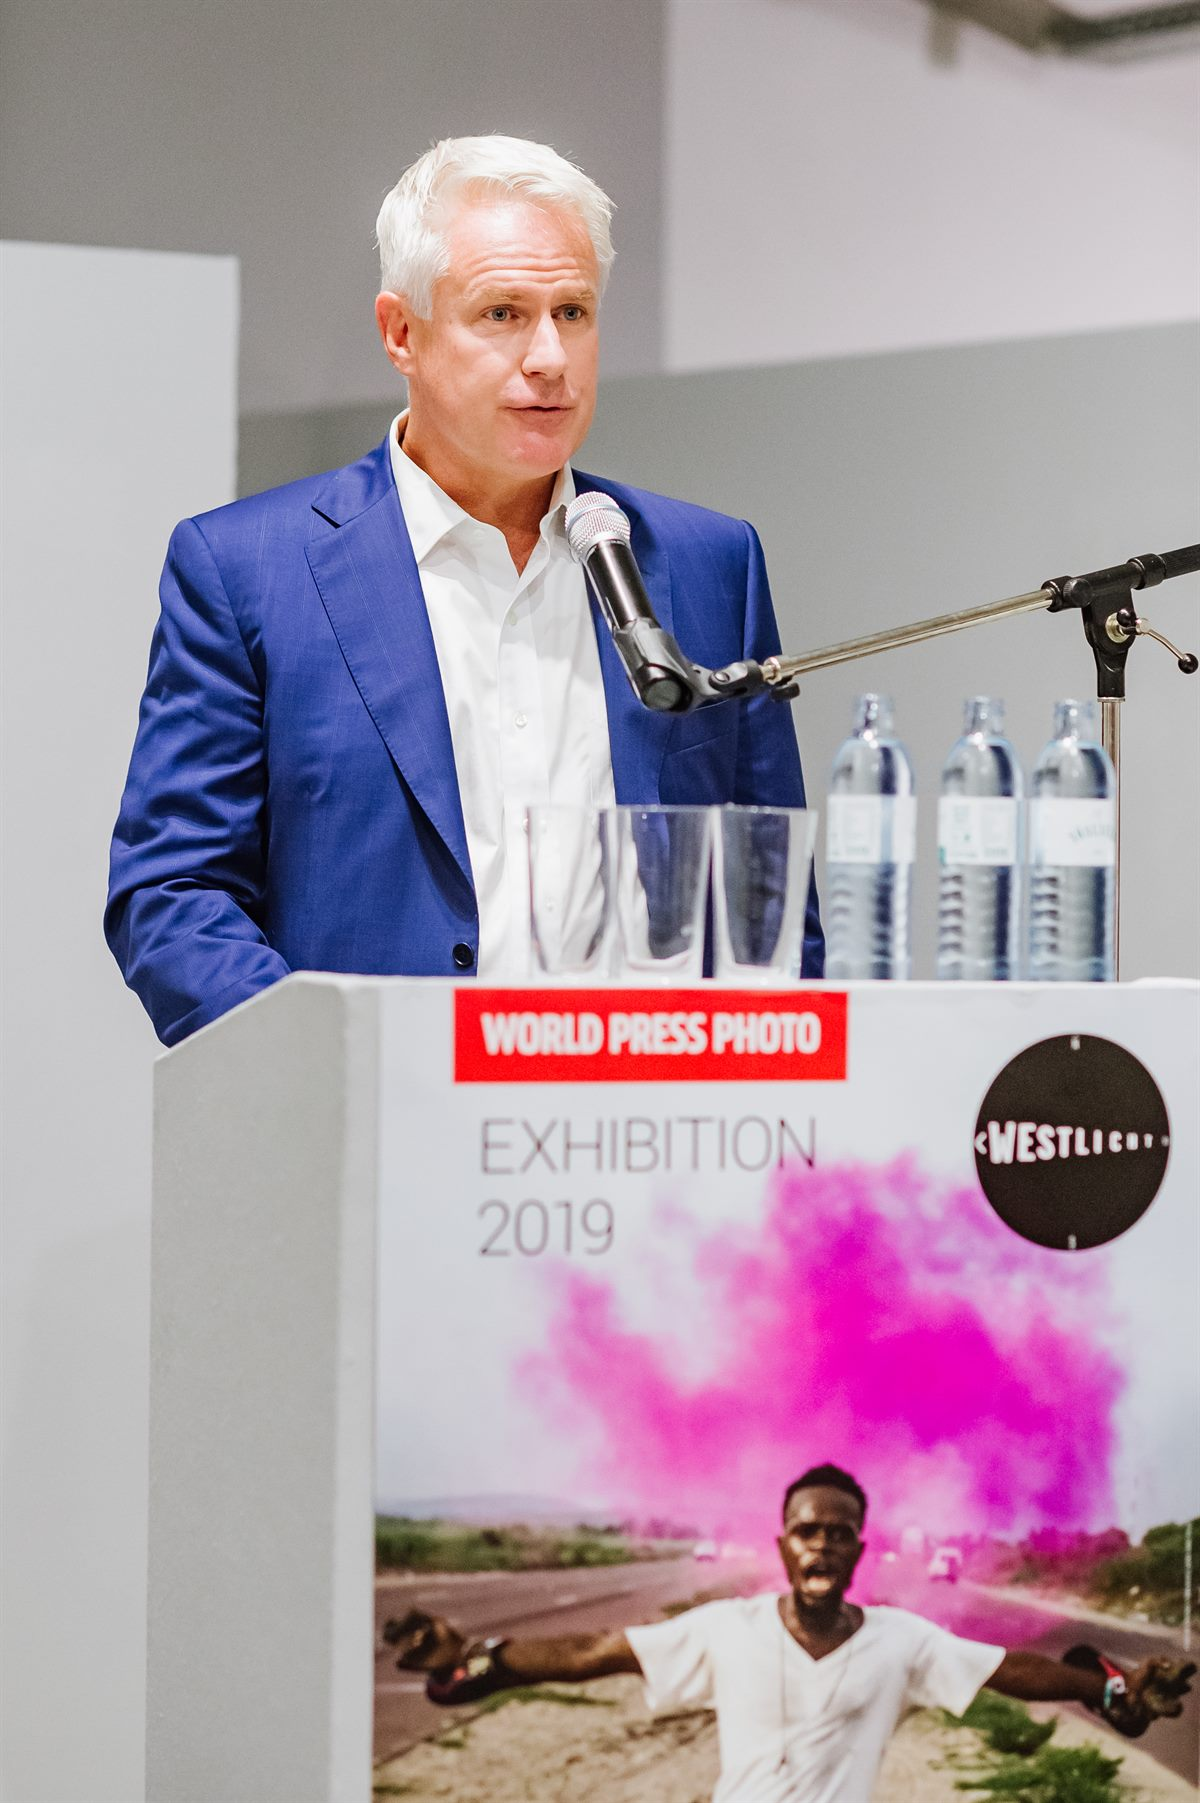 John Moore, Getty Images, bei der World Press Photo Ausstellung 2019 im WestLicht